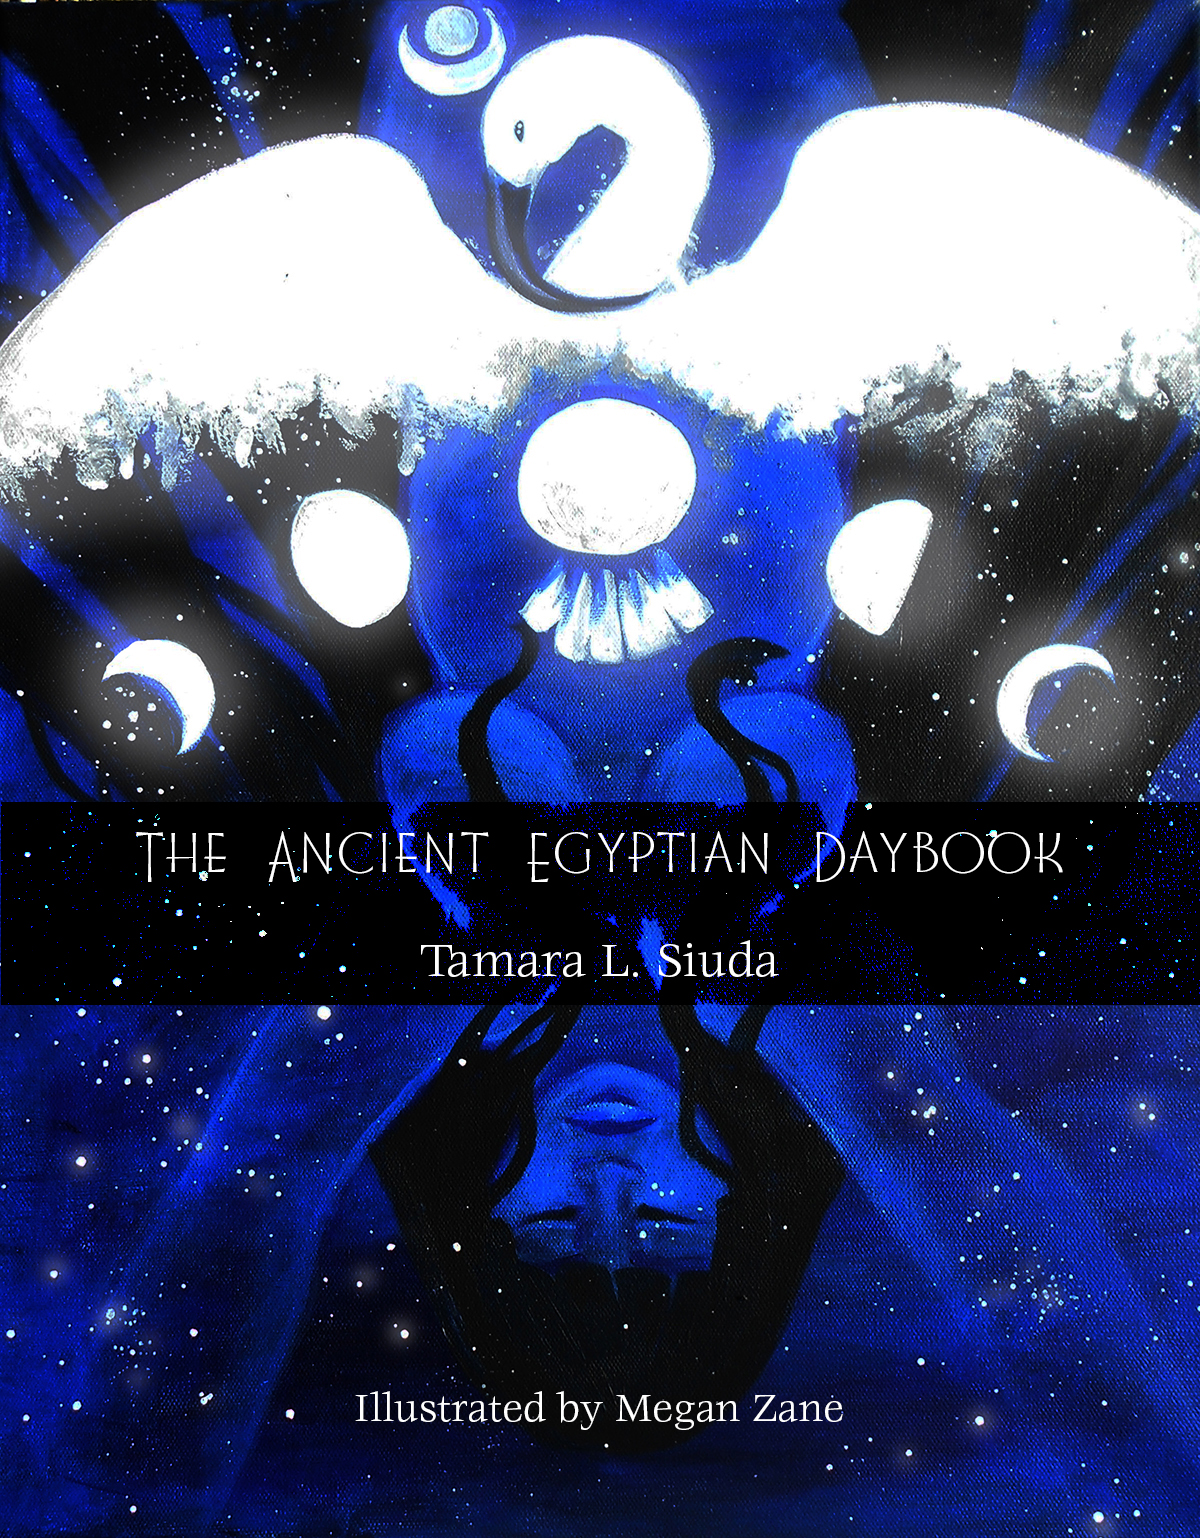 The Ancient Egyptian Daybook (Hardcover) by Tamara L. Siuda